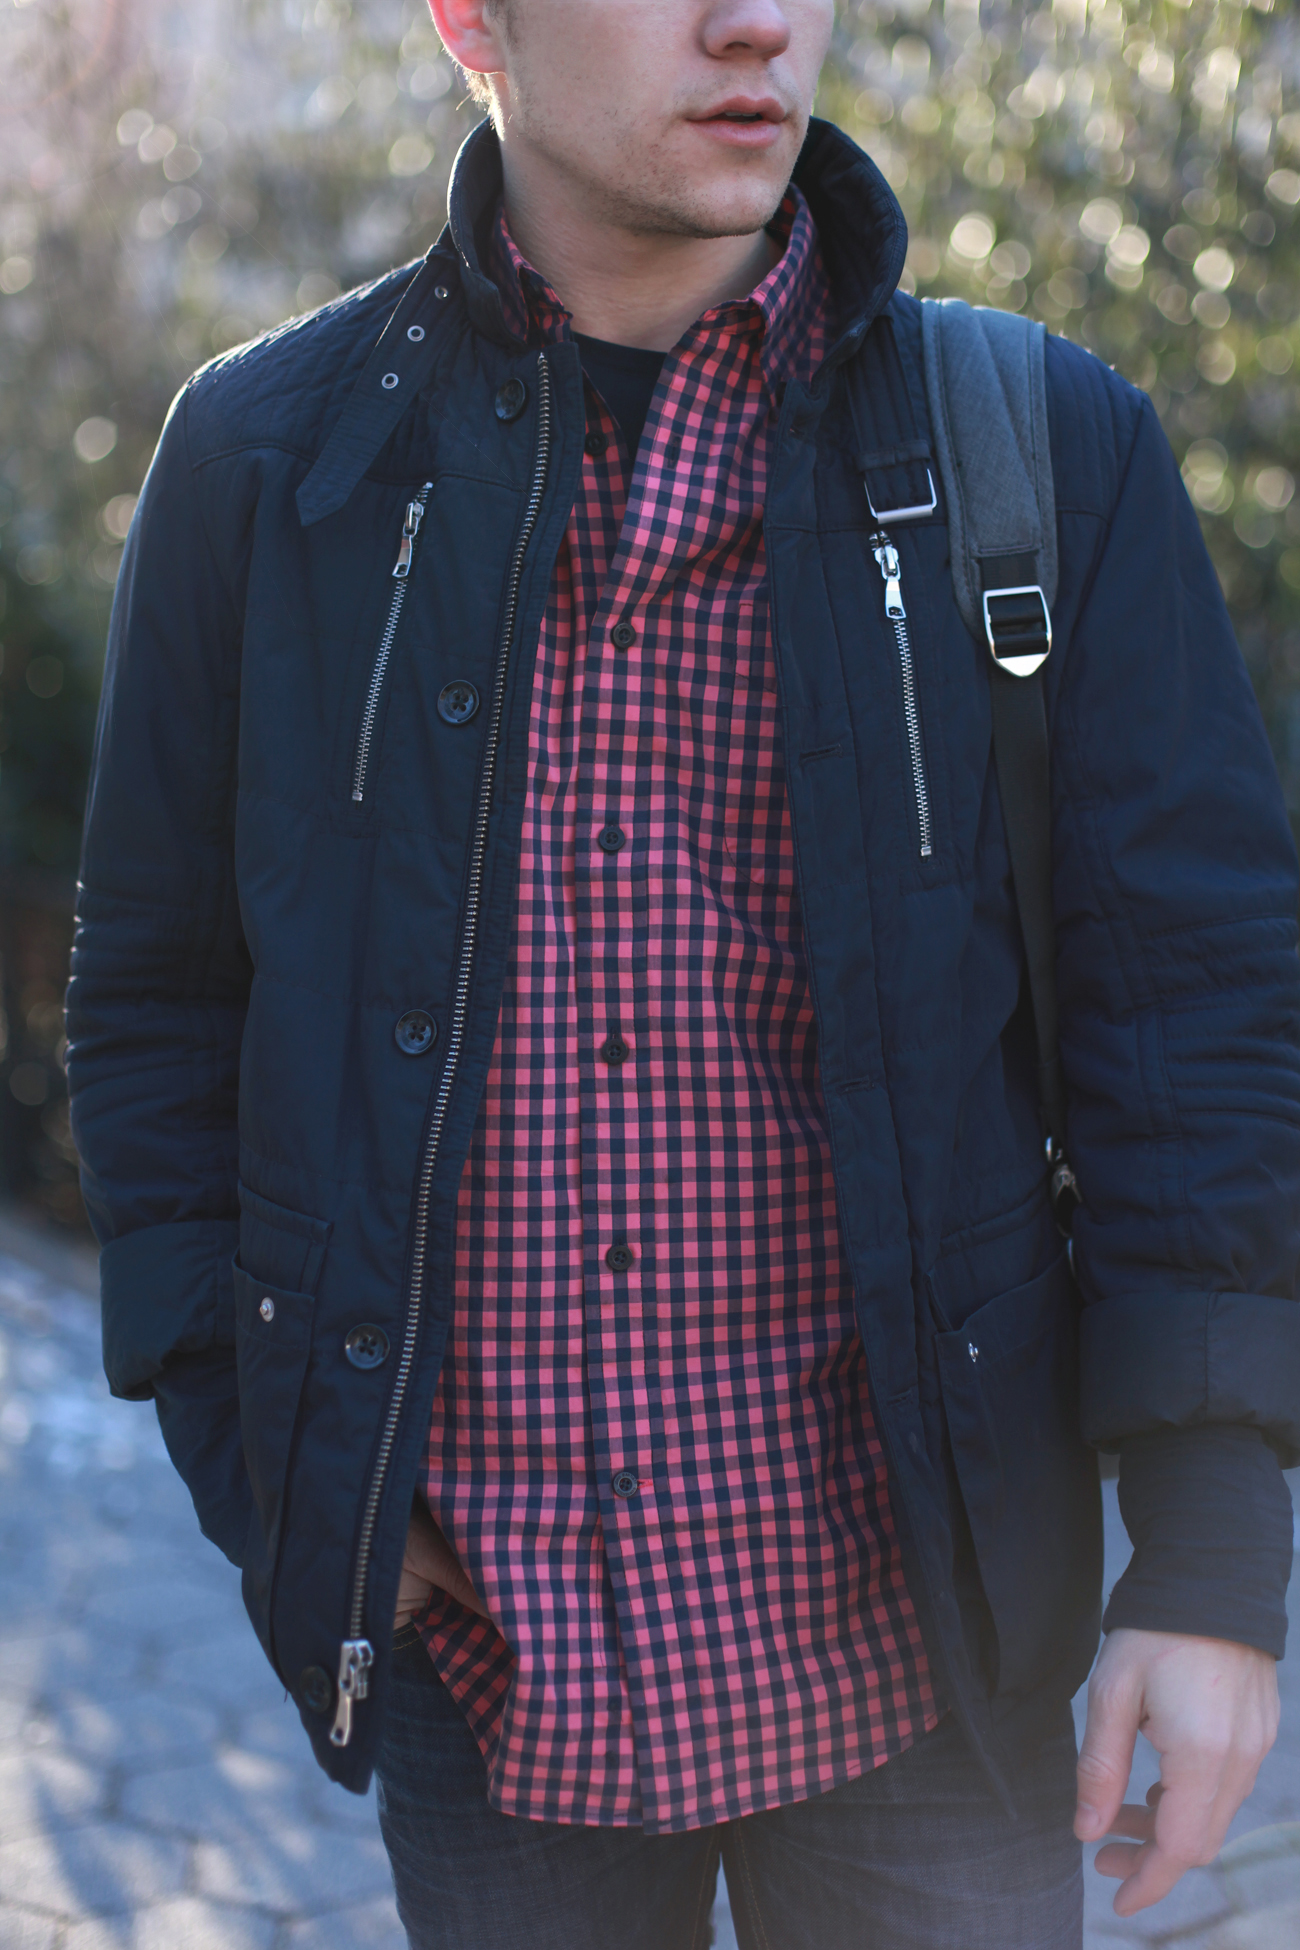 NY Men's Fashion Blog / Laptop Backpack / Red Gingham Shirt / Blue Quilted Jacket / Dark Wash Denim